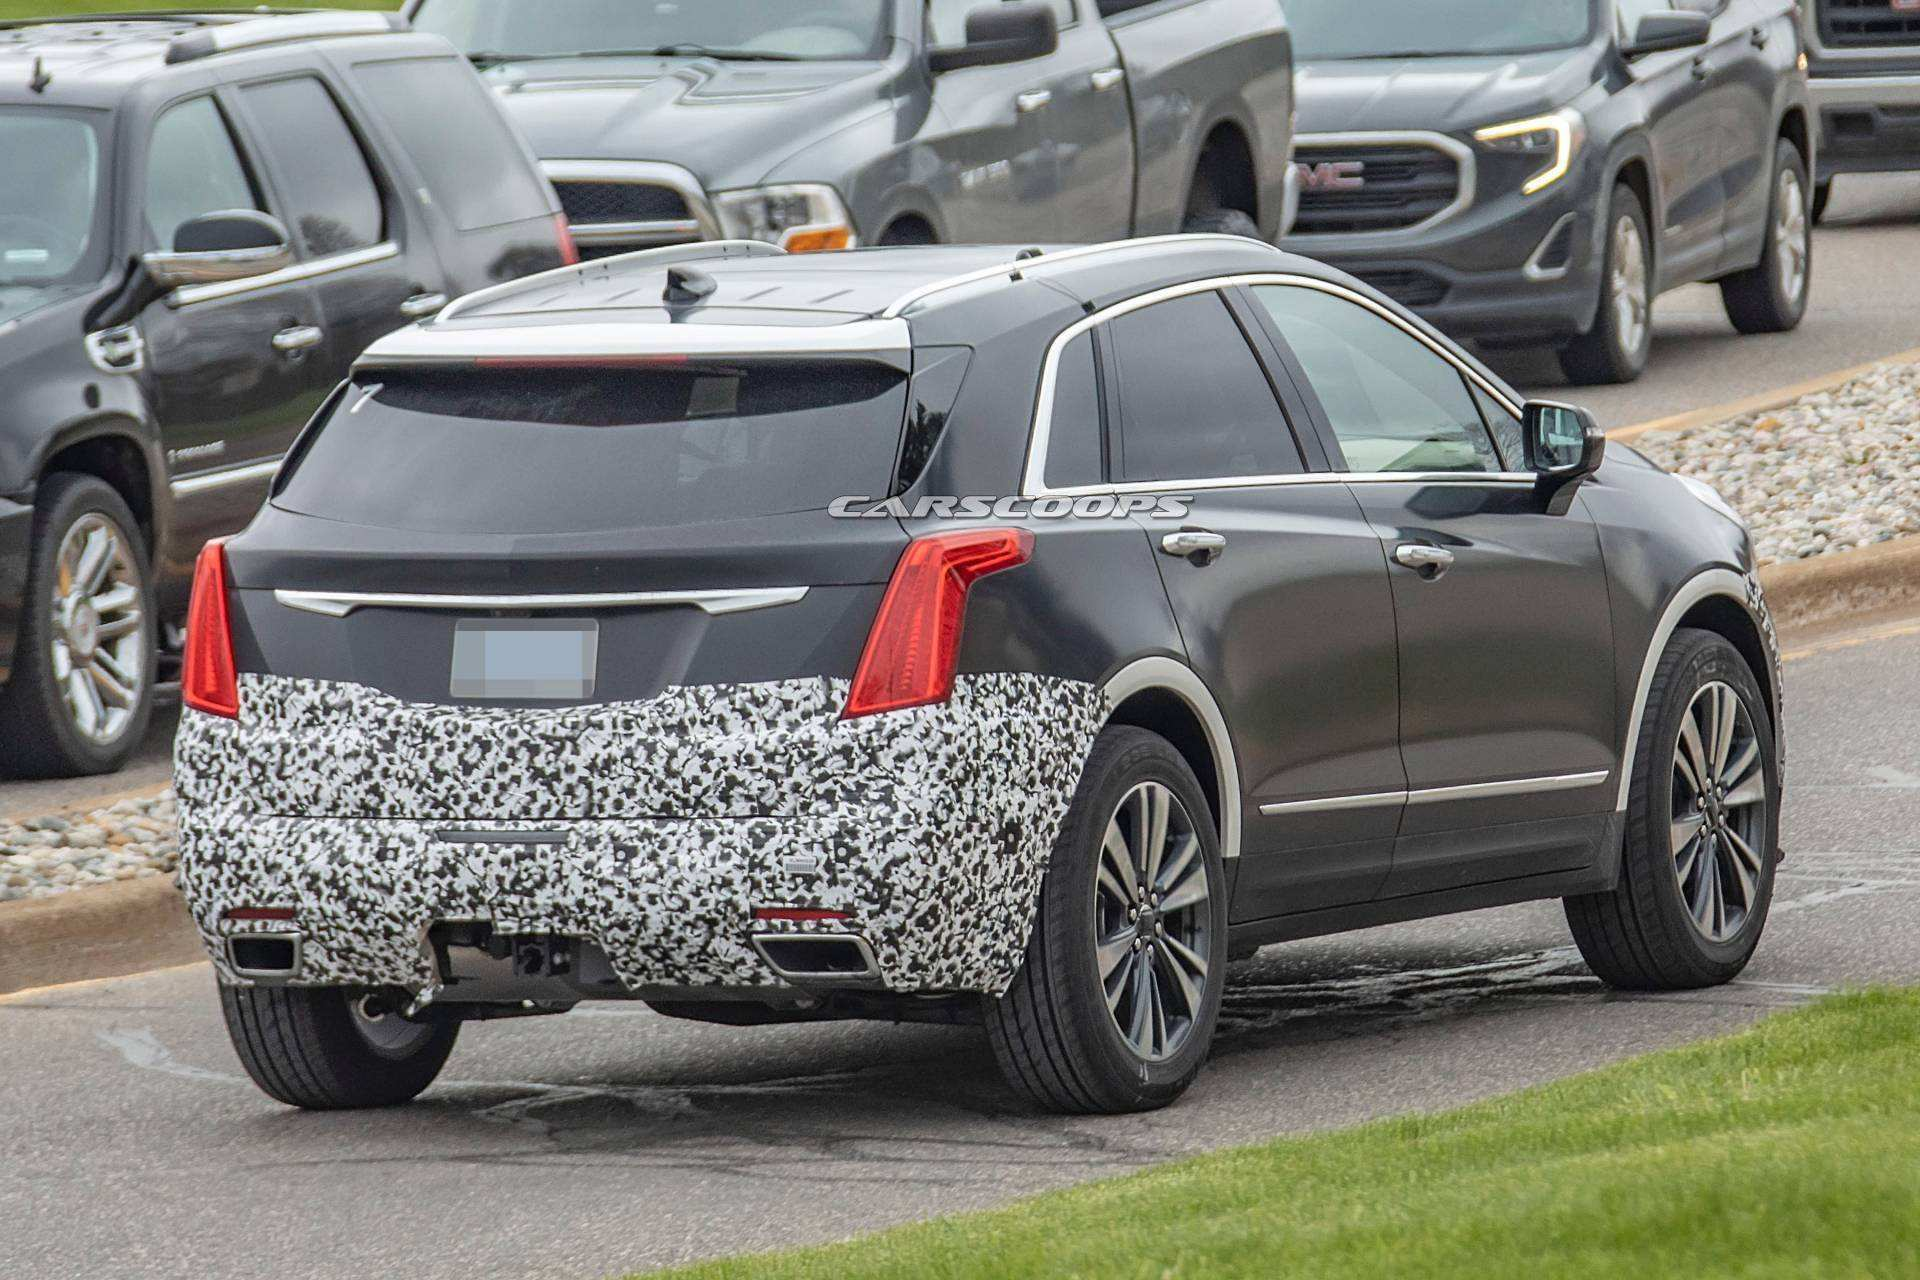 61 New 2019 Spy Shots Cadillac Xt5 Research New